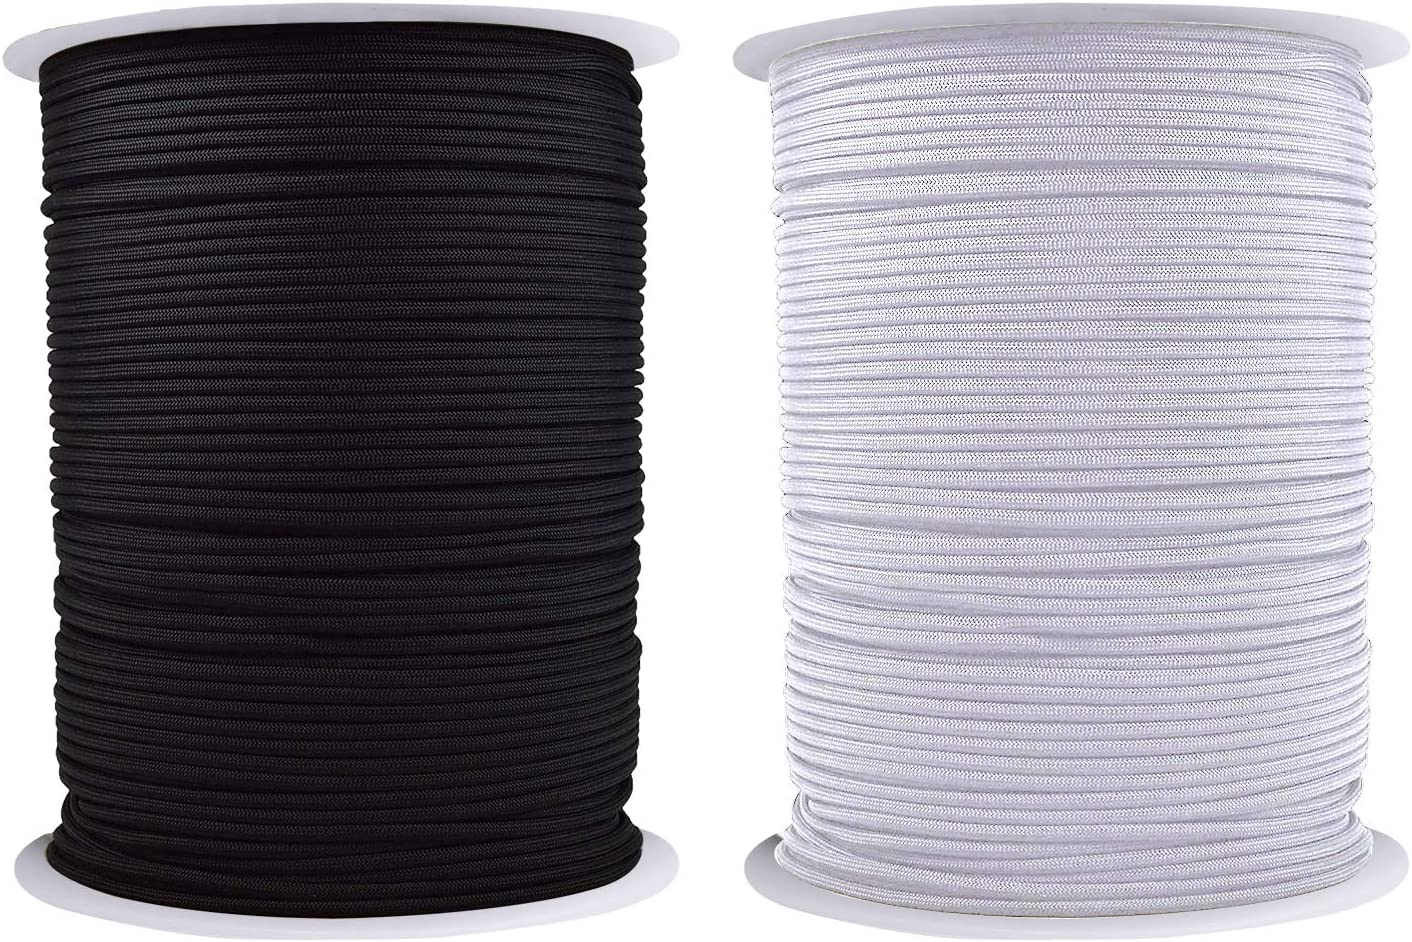 camouflage spaghetti cord for bracelet making Elastic cord for hair ties and headbands